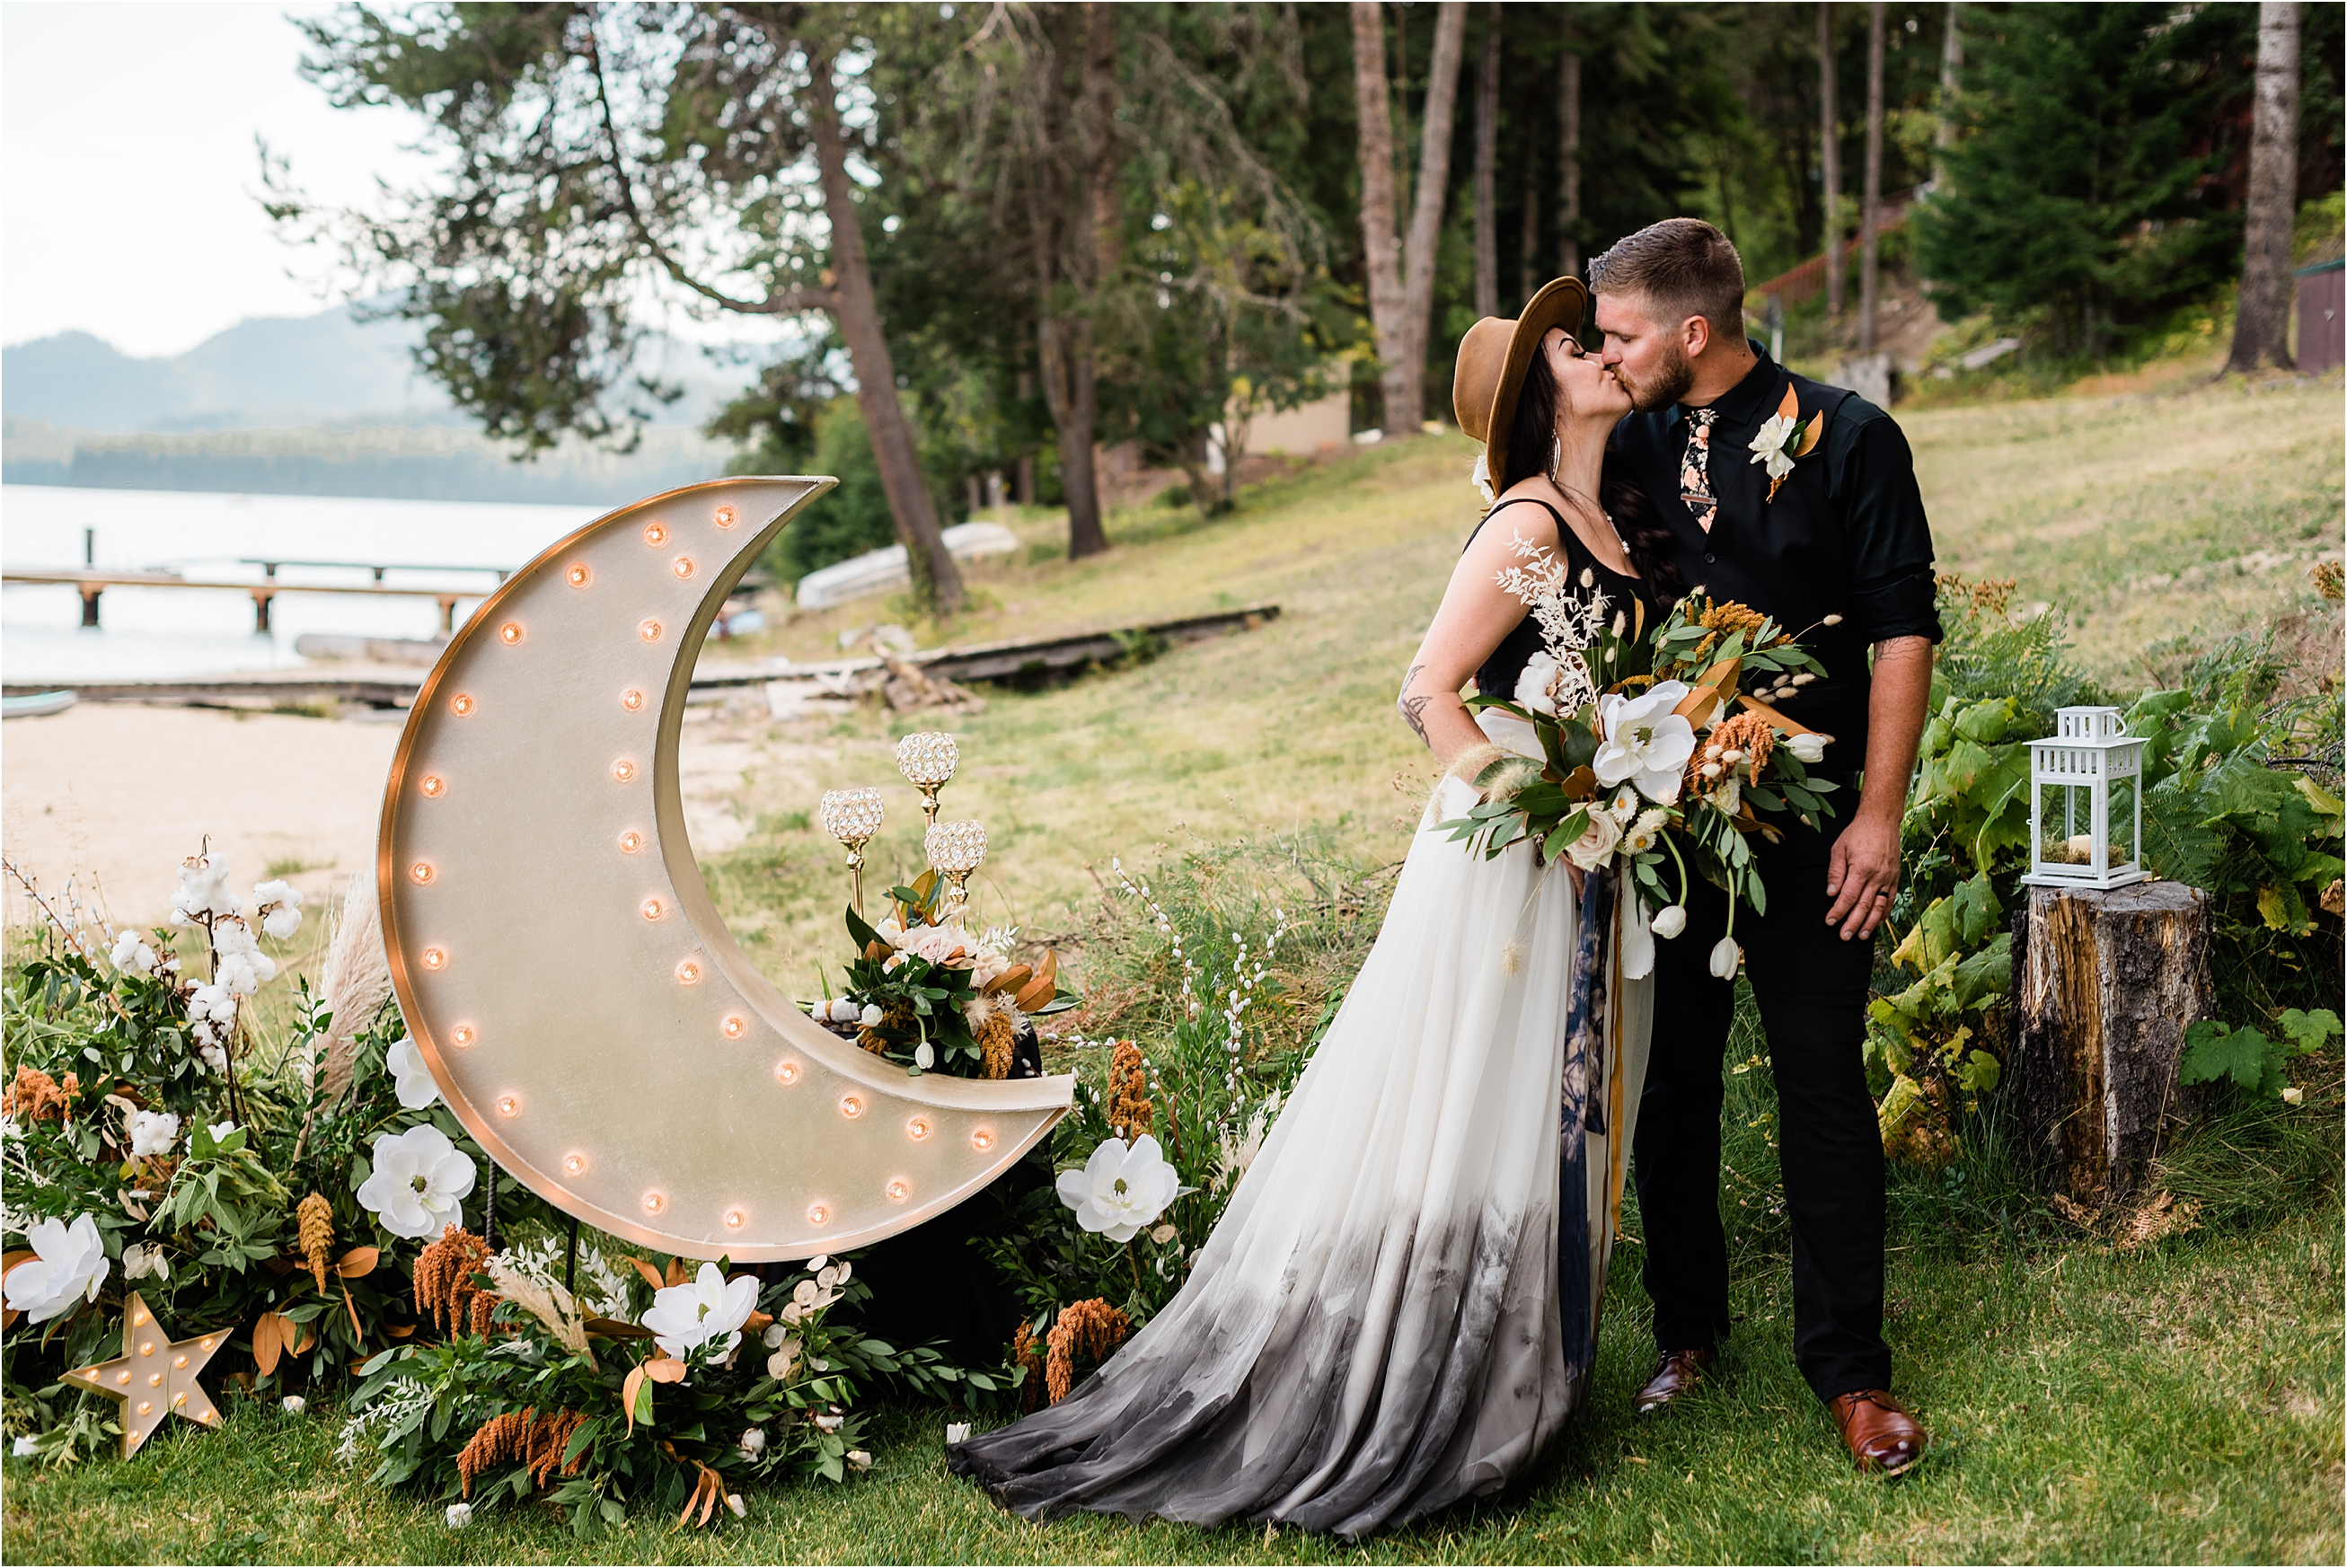 Shelby & Garrett and their custom made celestial inspired moon decor at the autumn Priest Lake elopement.